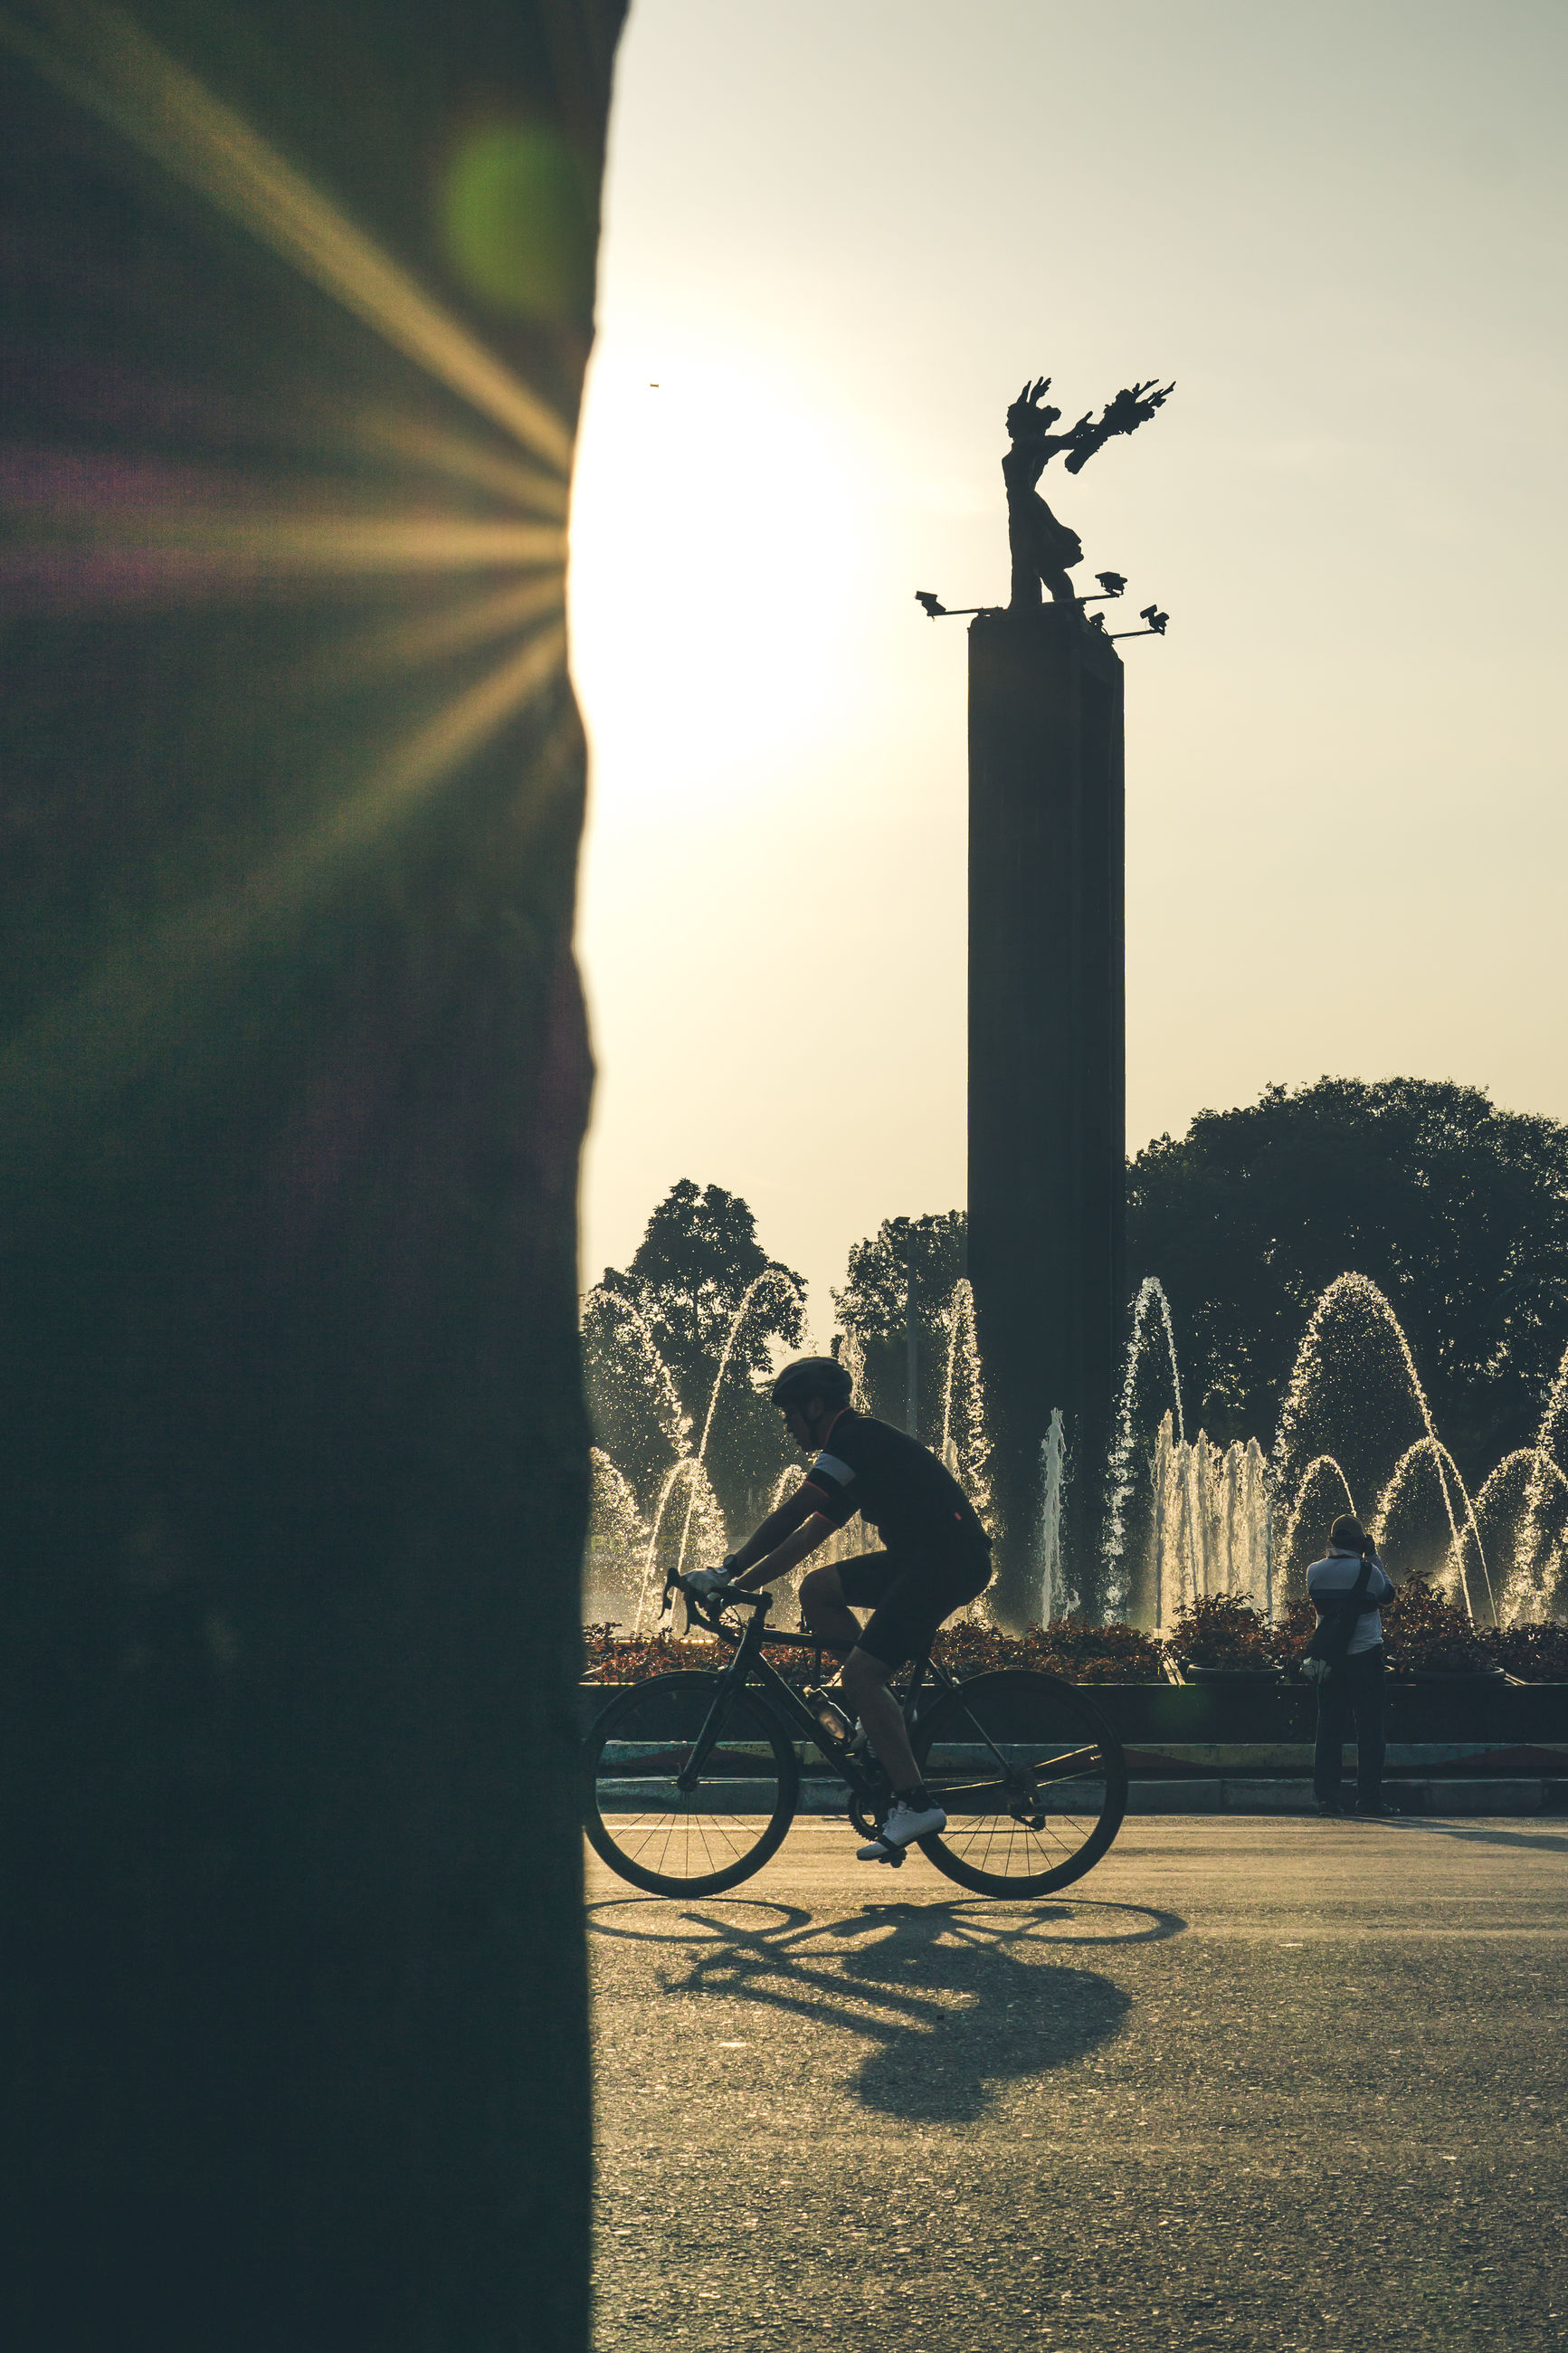 bicycle, nature, sculpture, statue, sky, architecture, art and craft, sunlight, transportation, plant, representation, human representation, mode of transportation, built structure, outdoors, building exterior, land vehicle, no people, day, city, lens flare, architectural column